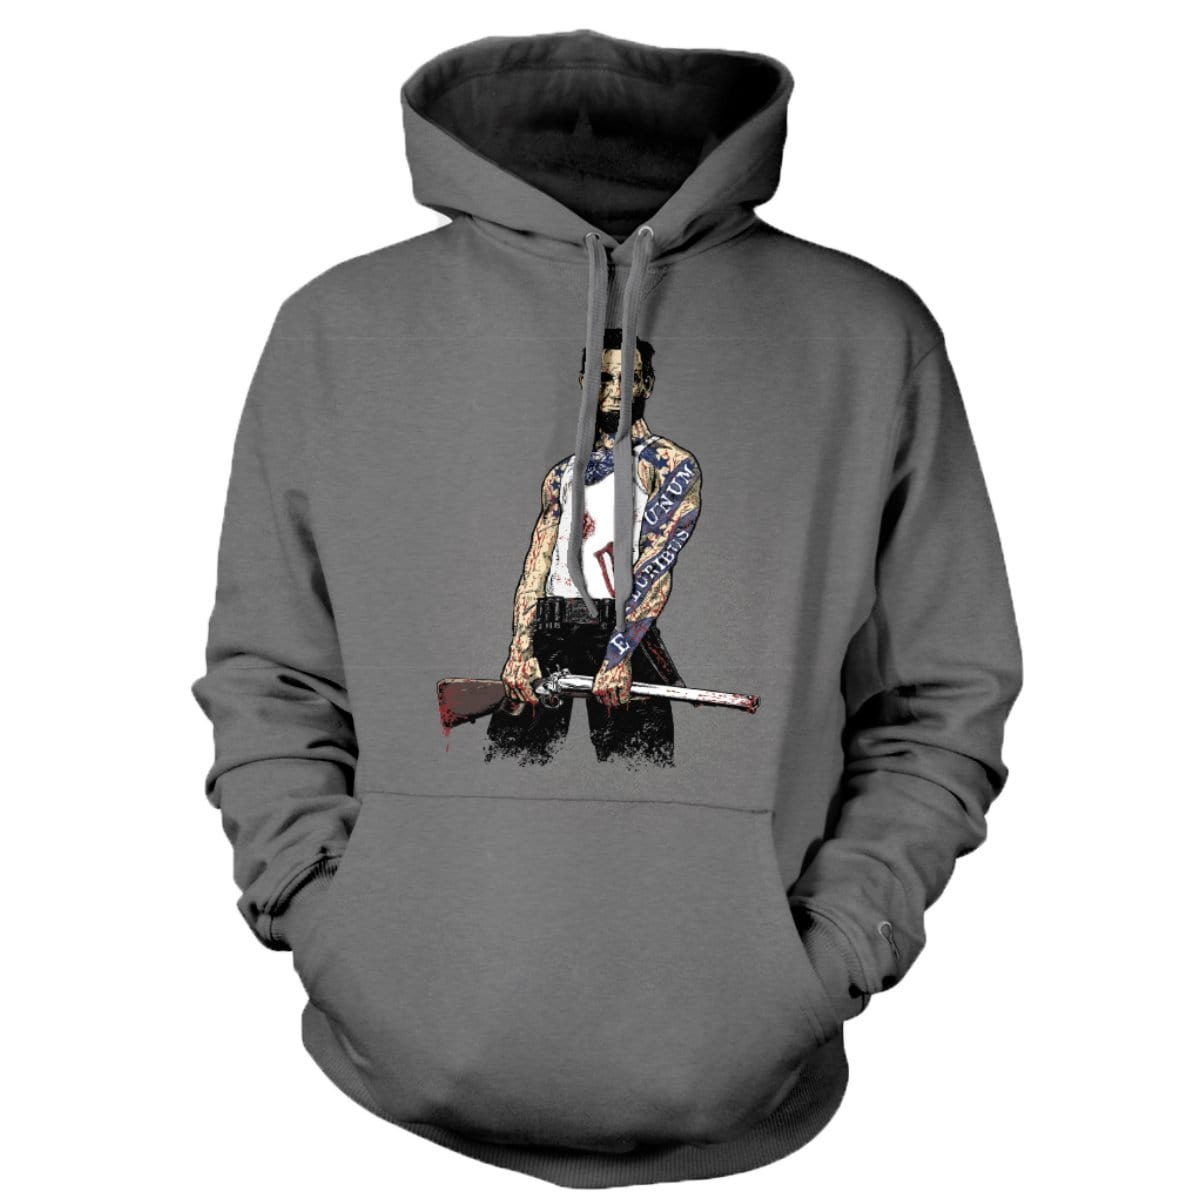 Original Pipe Hitter - Abe Hoodie - Grey - T-Shirts - Pipe Hitters Union